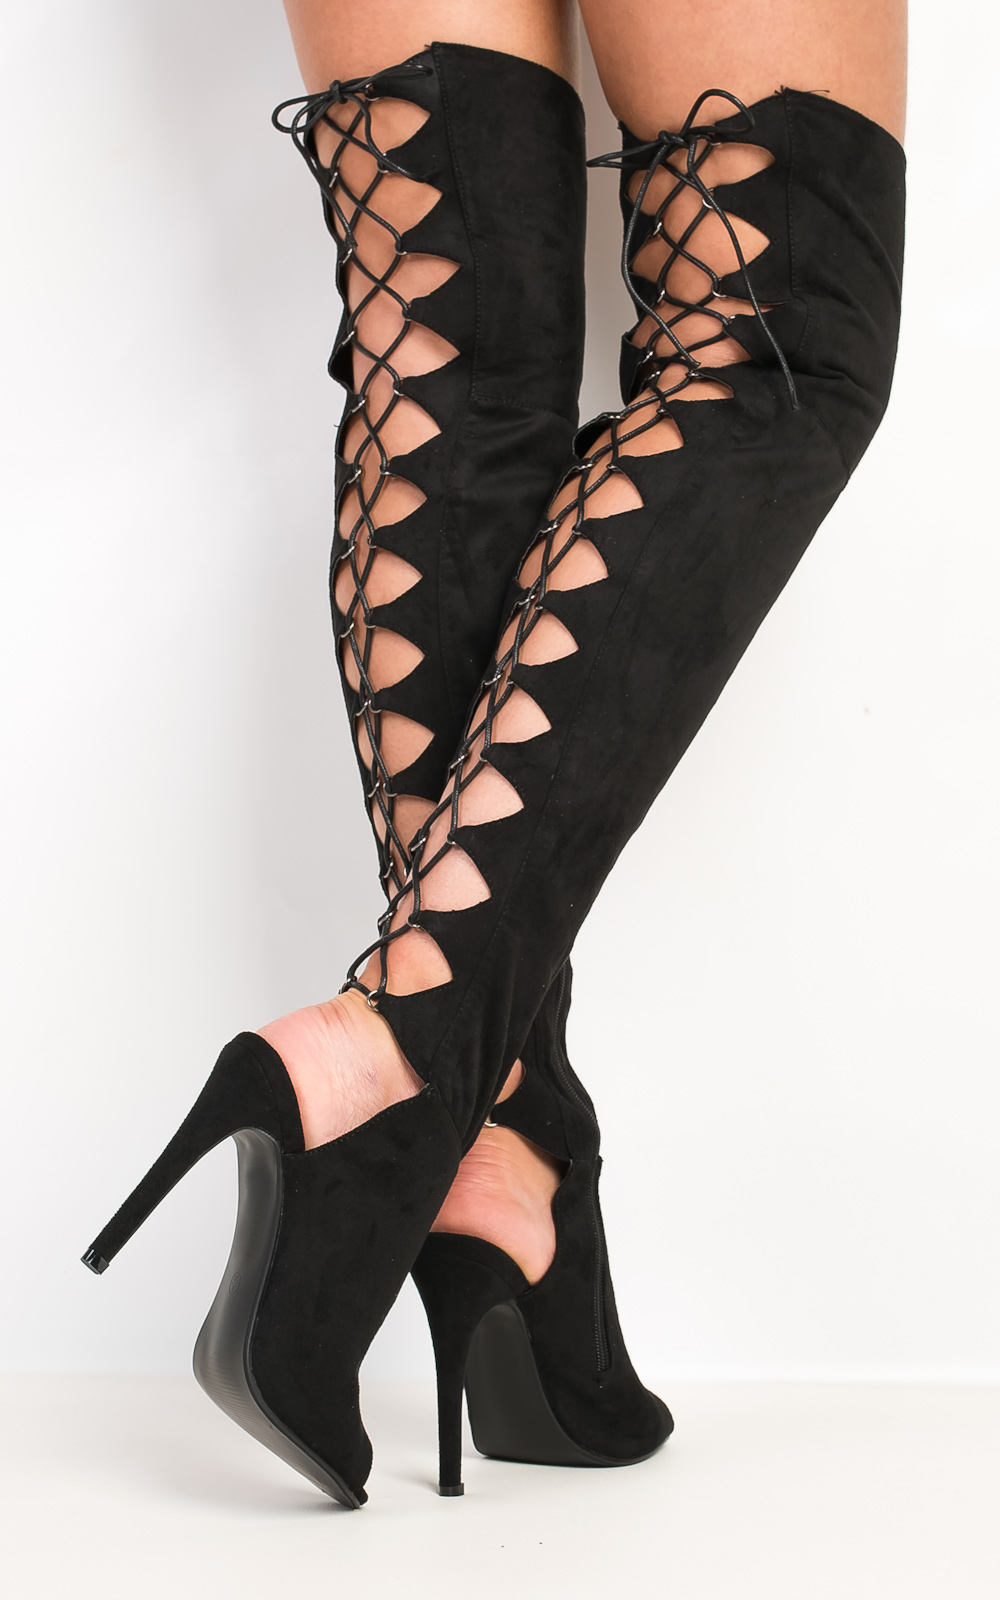 iKrush Ravelle Lace Up Knee High Boots